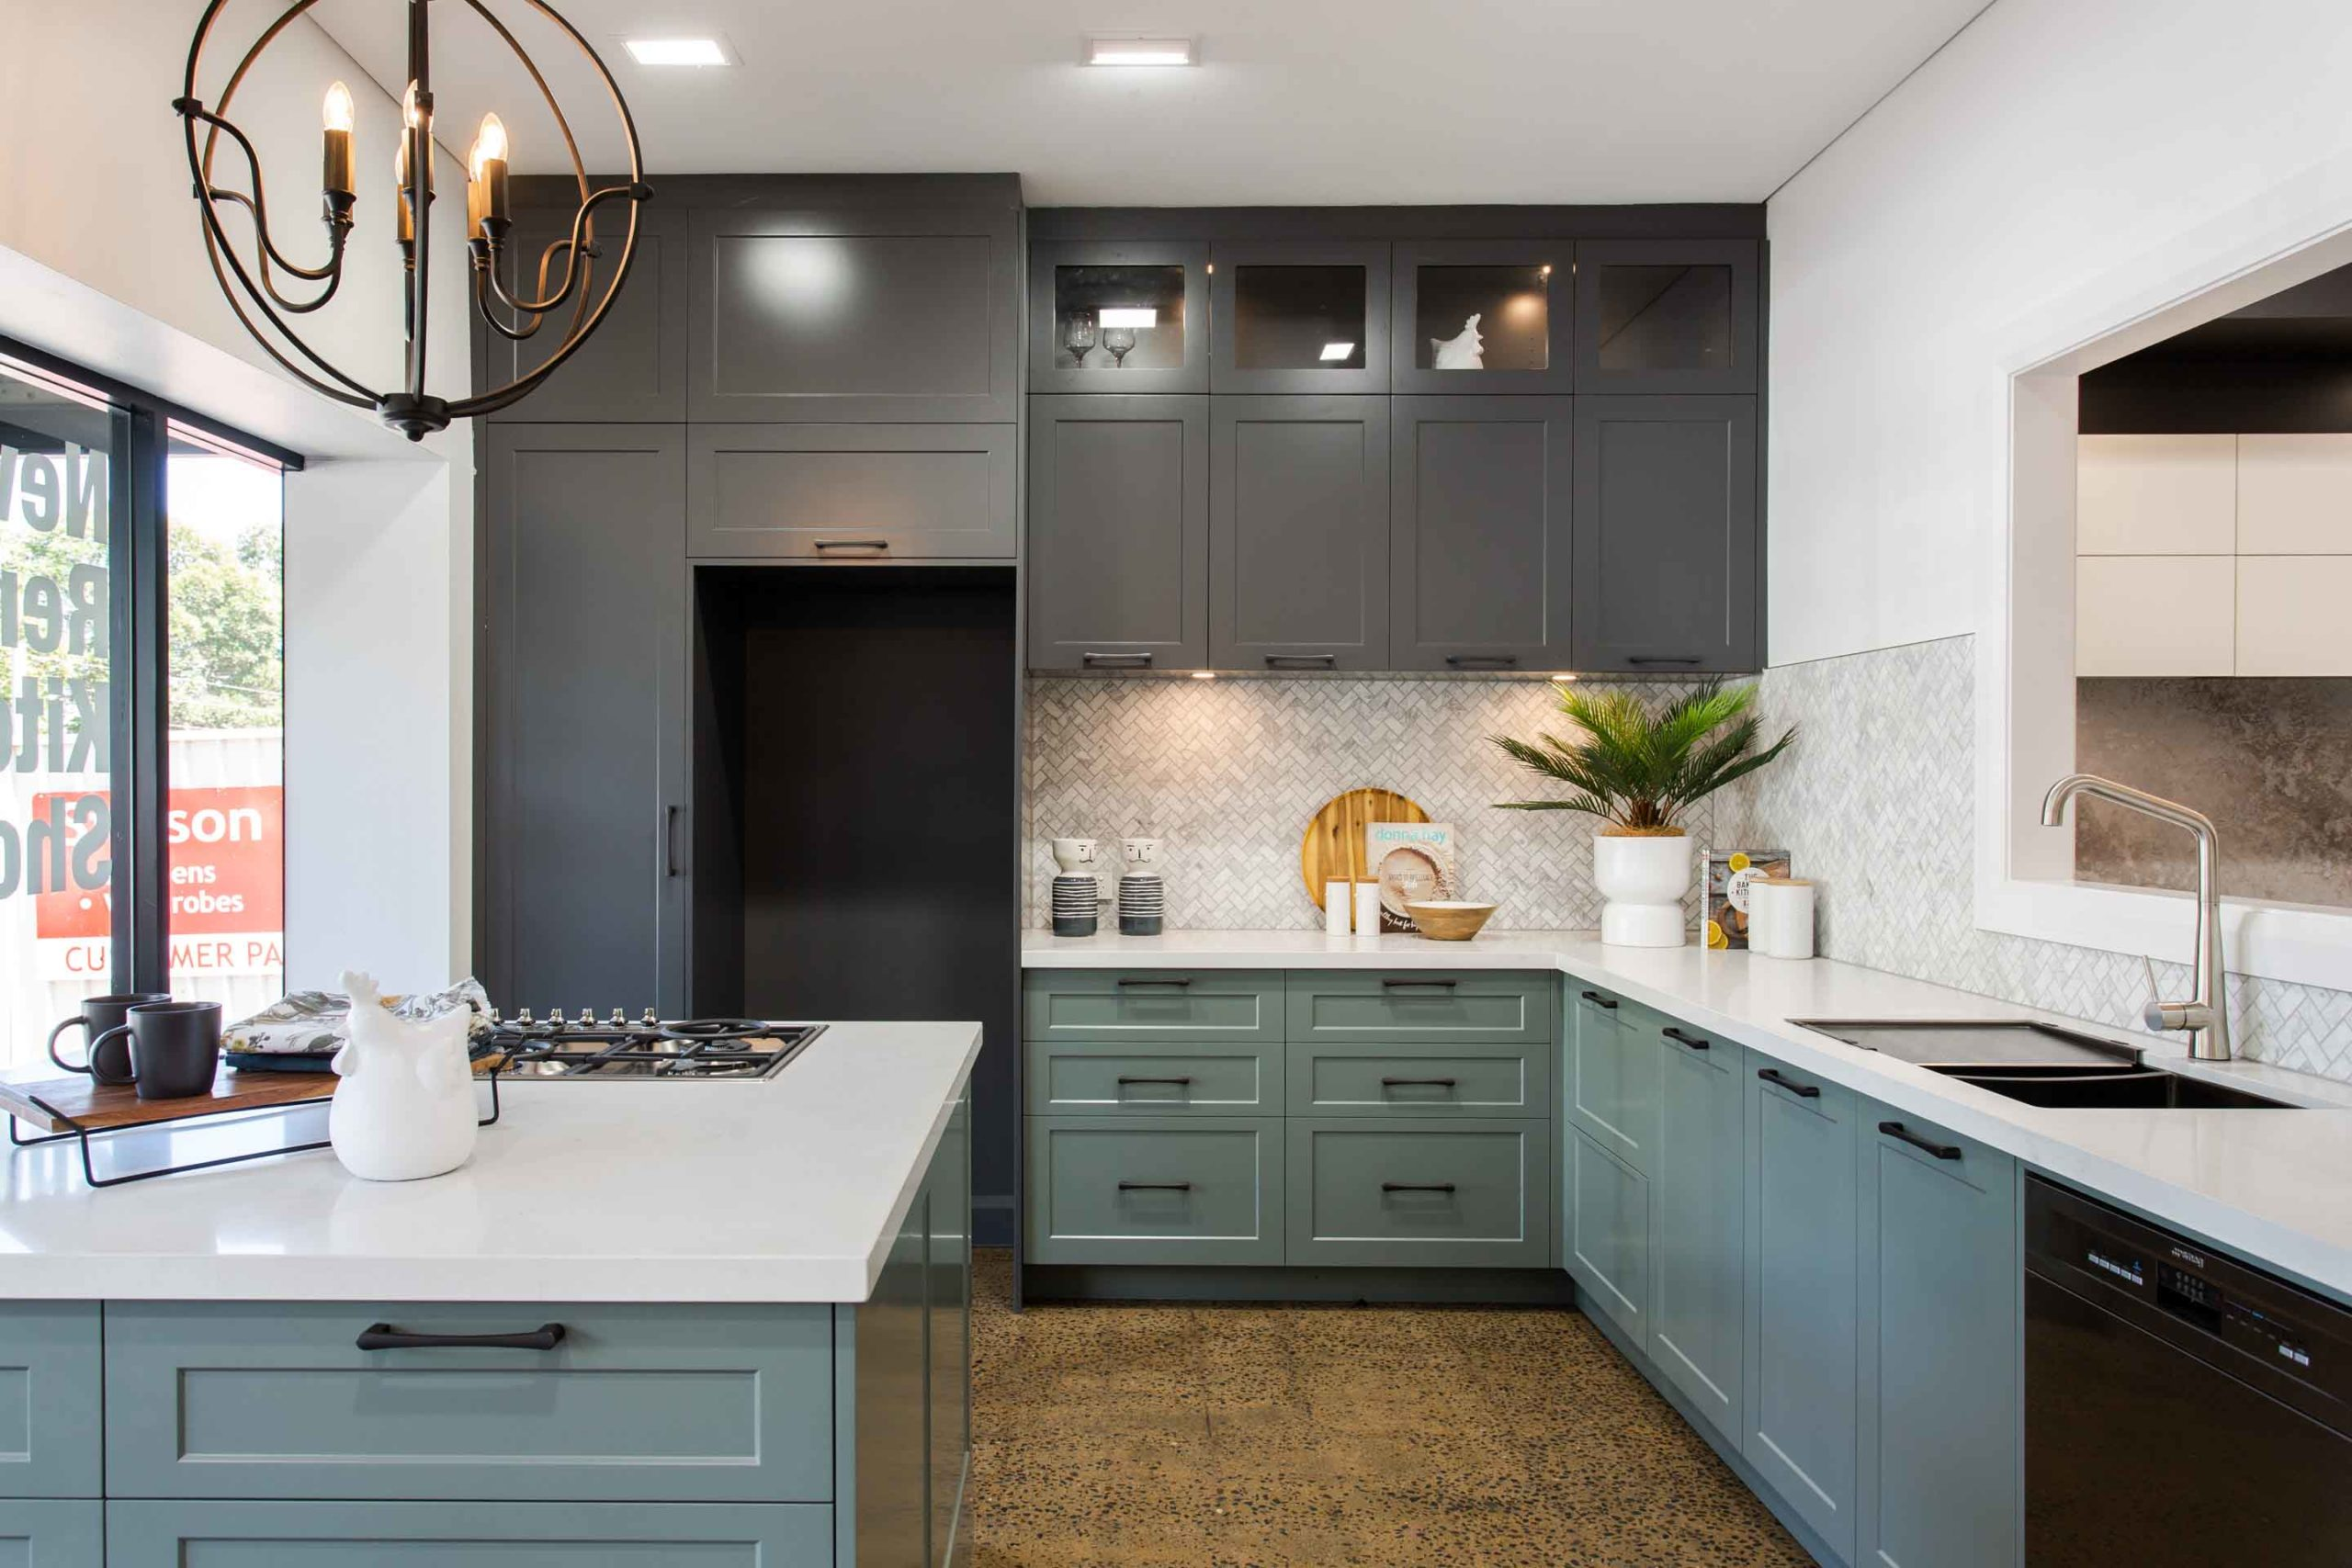 Leopard_Lens_Photography_Inarc_Design_Simson_Kitchen_Showroom-9